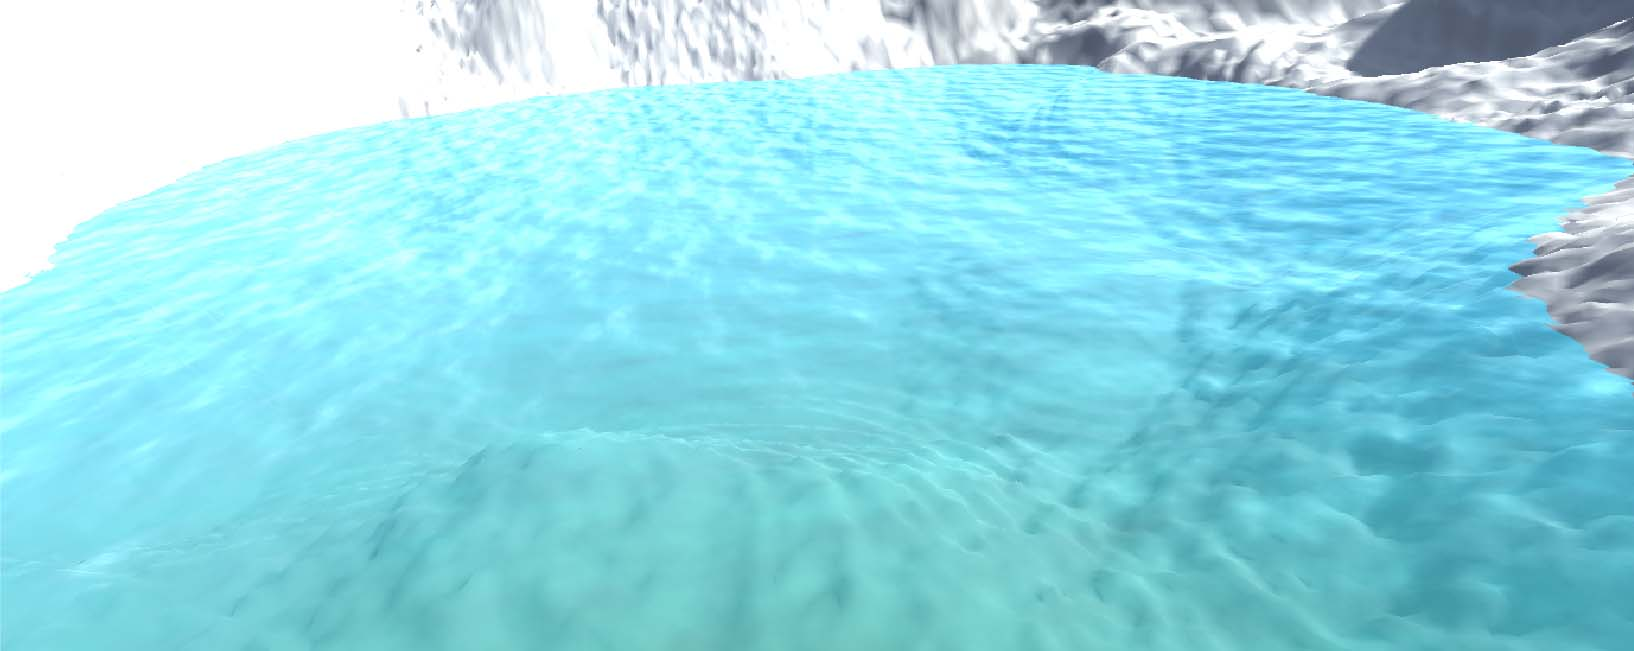 How to make a water surface with up-and-down motion by Shaderforge in Unity